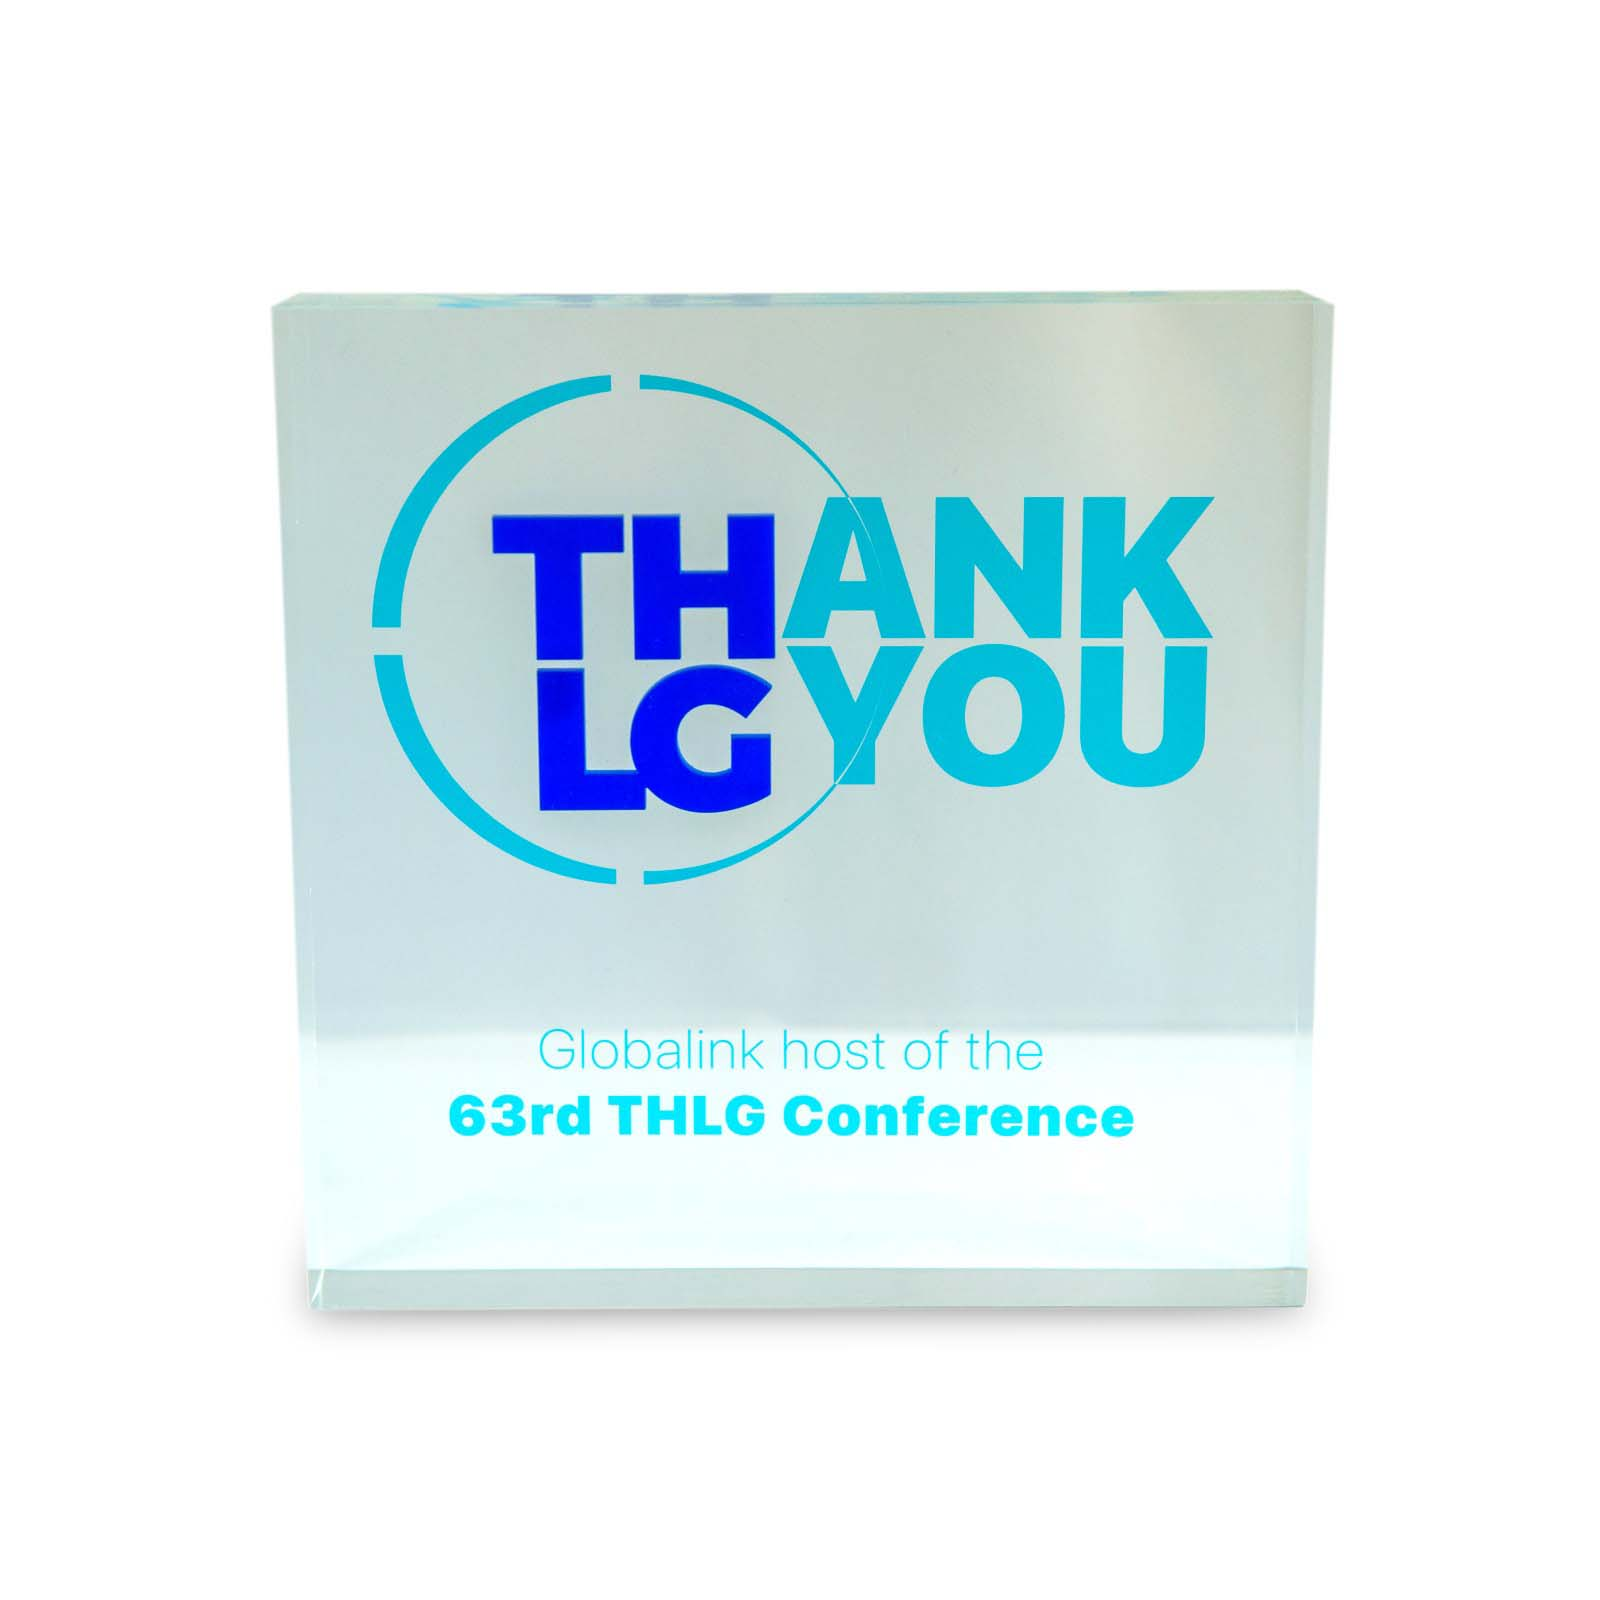 Globalink Host of the 63rd THLG Conference